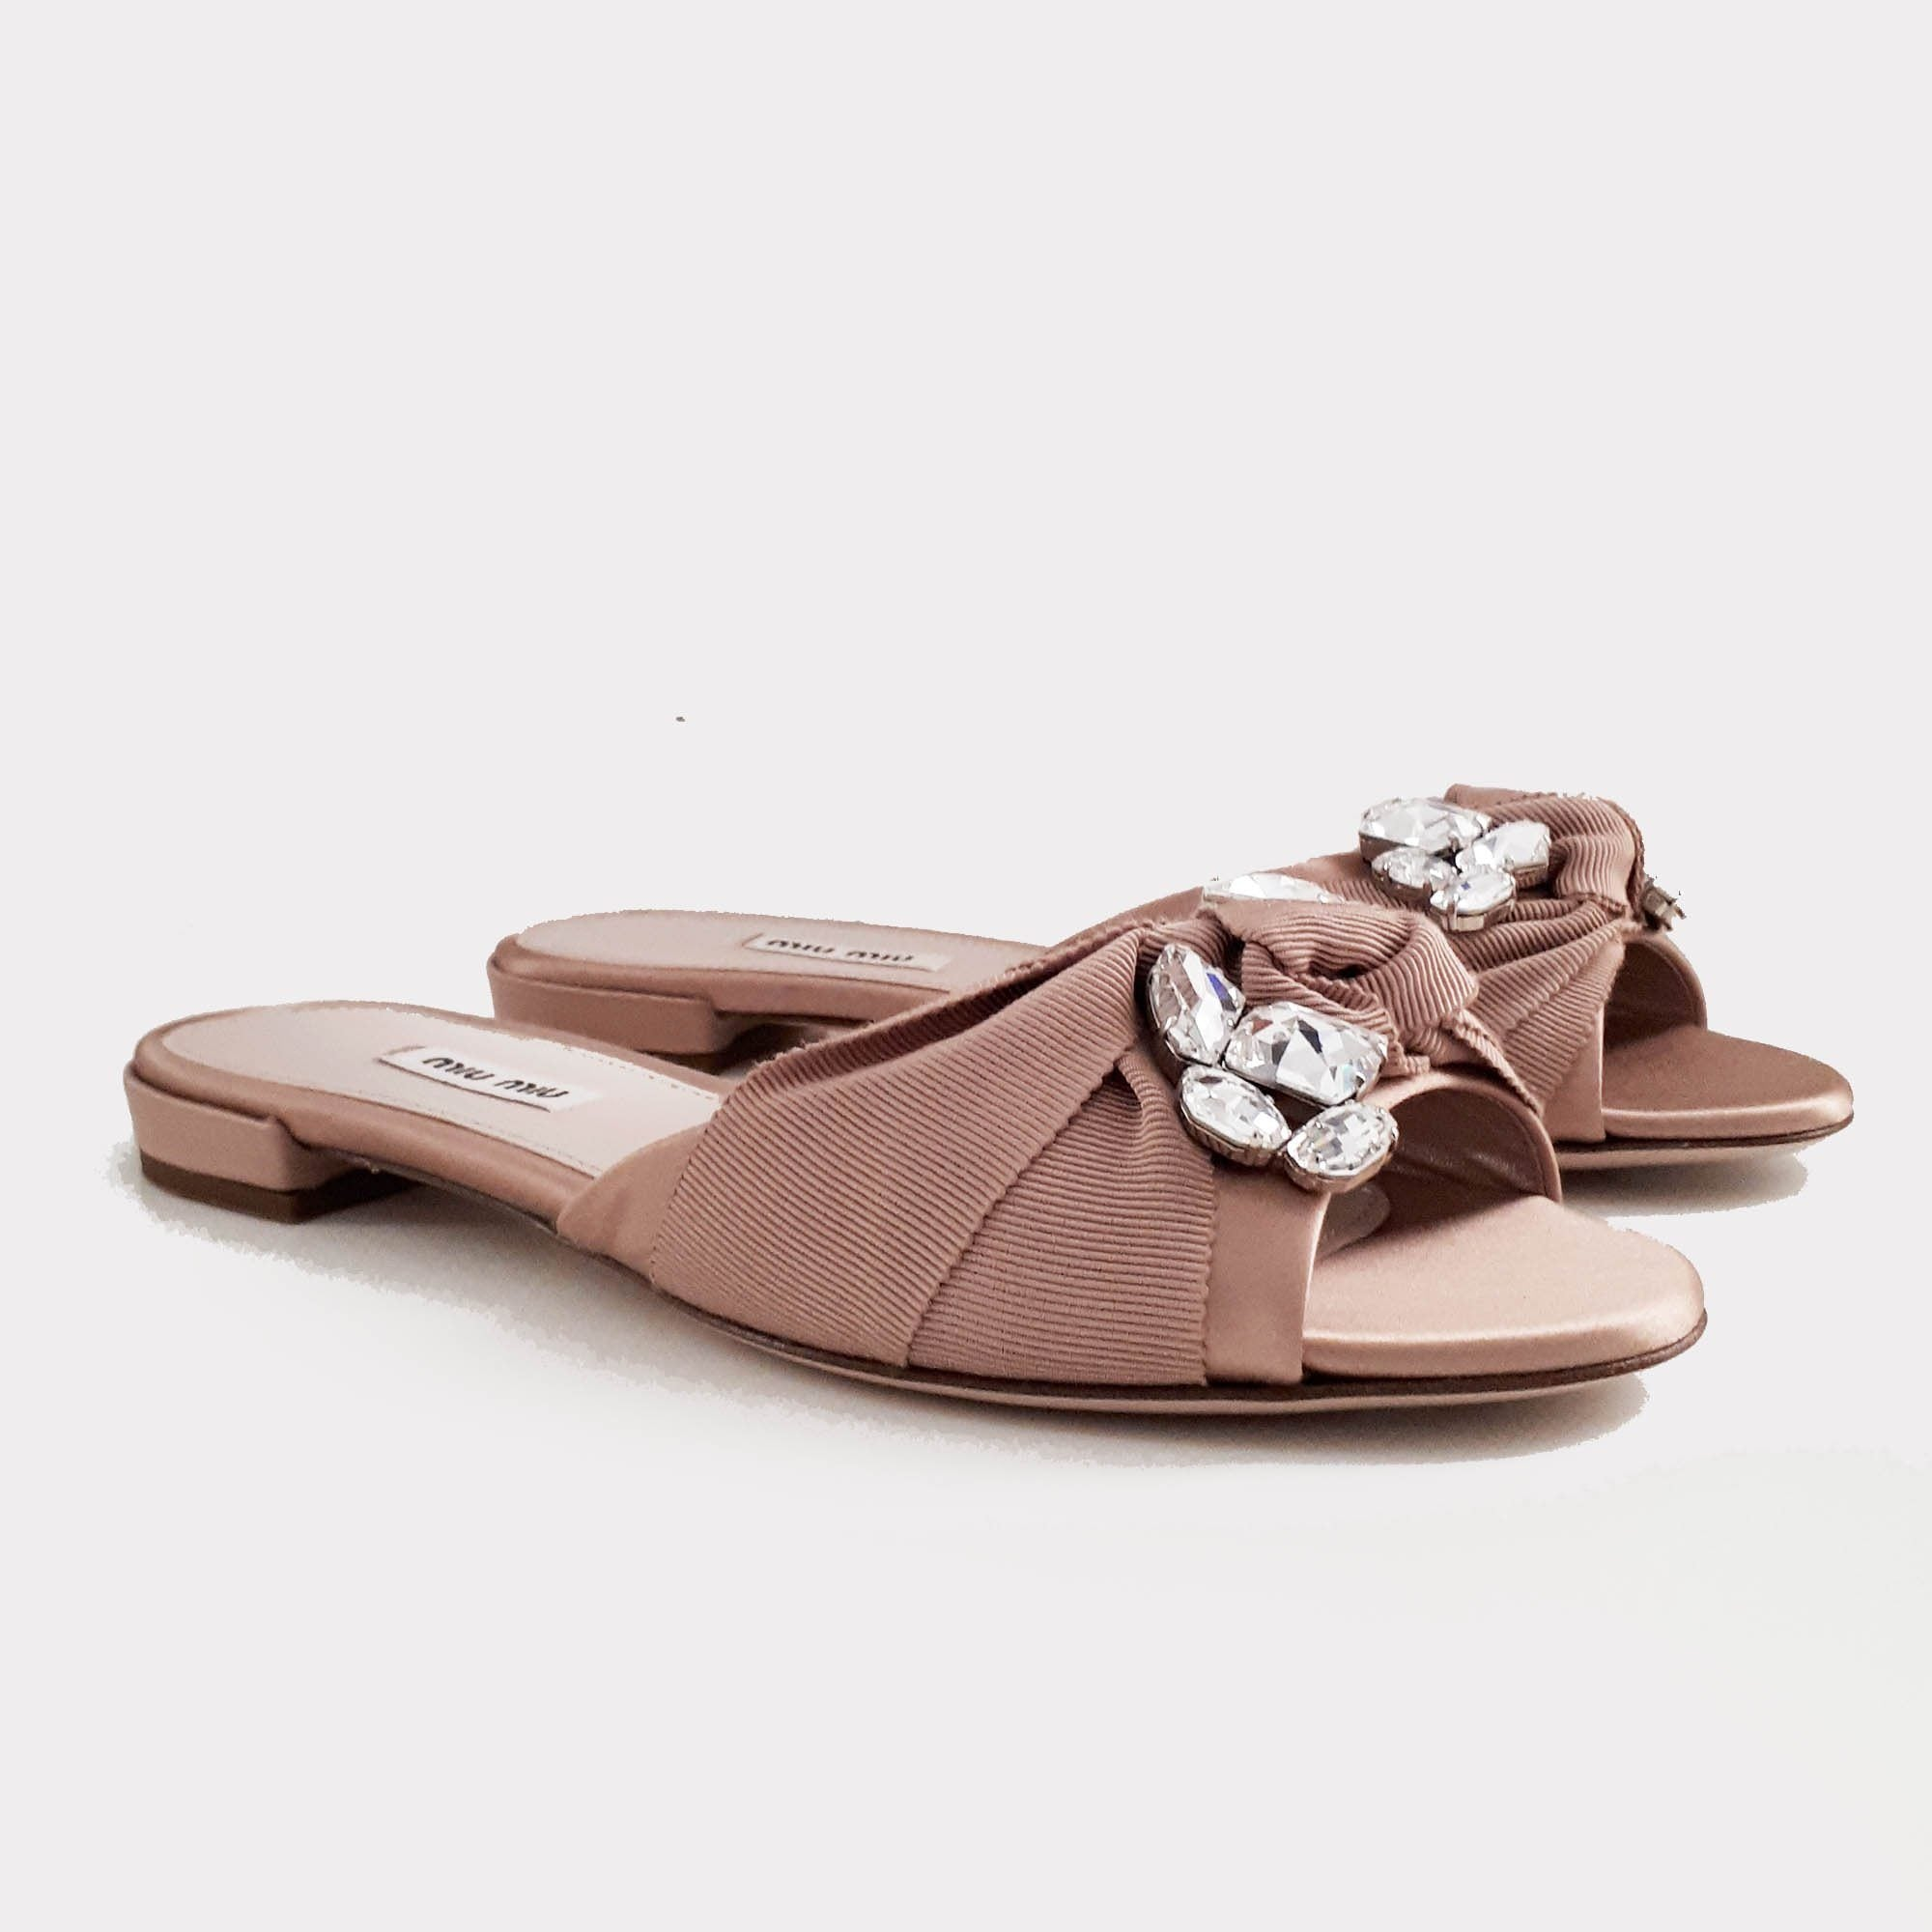 Miu Miu Rose Beige Satin Crystal Embellished Slip-On Sandal